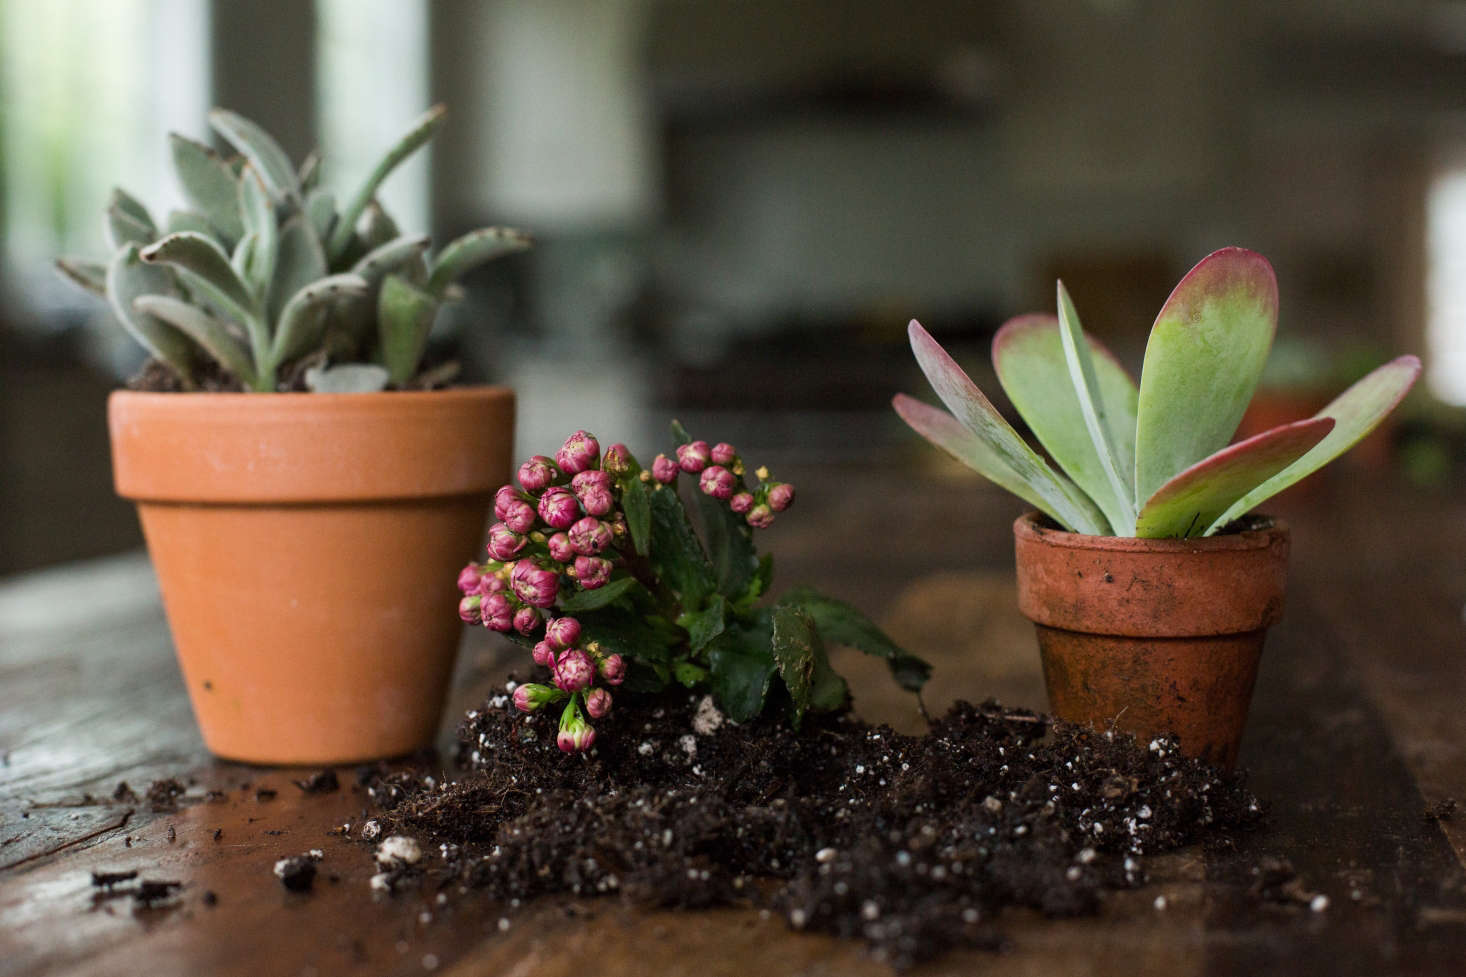 A trio of kalanchoes live in terra cotta pots with drainage holes.